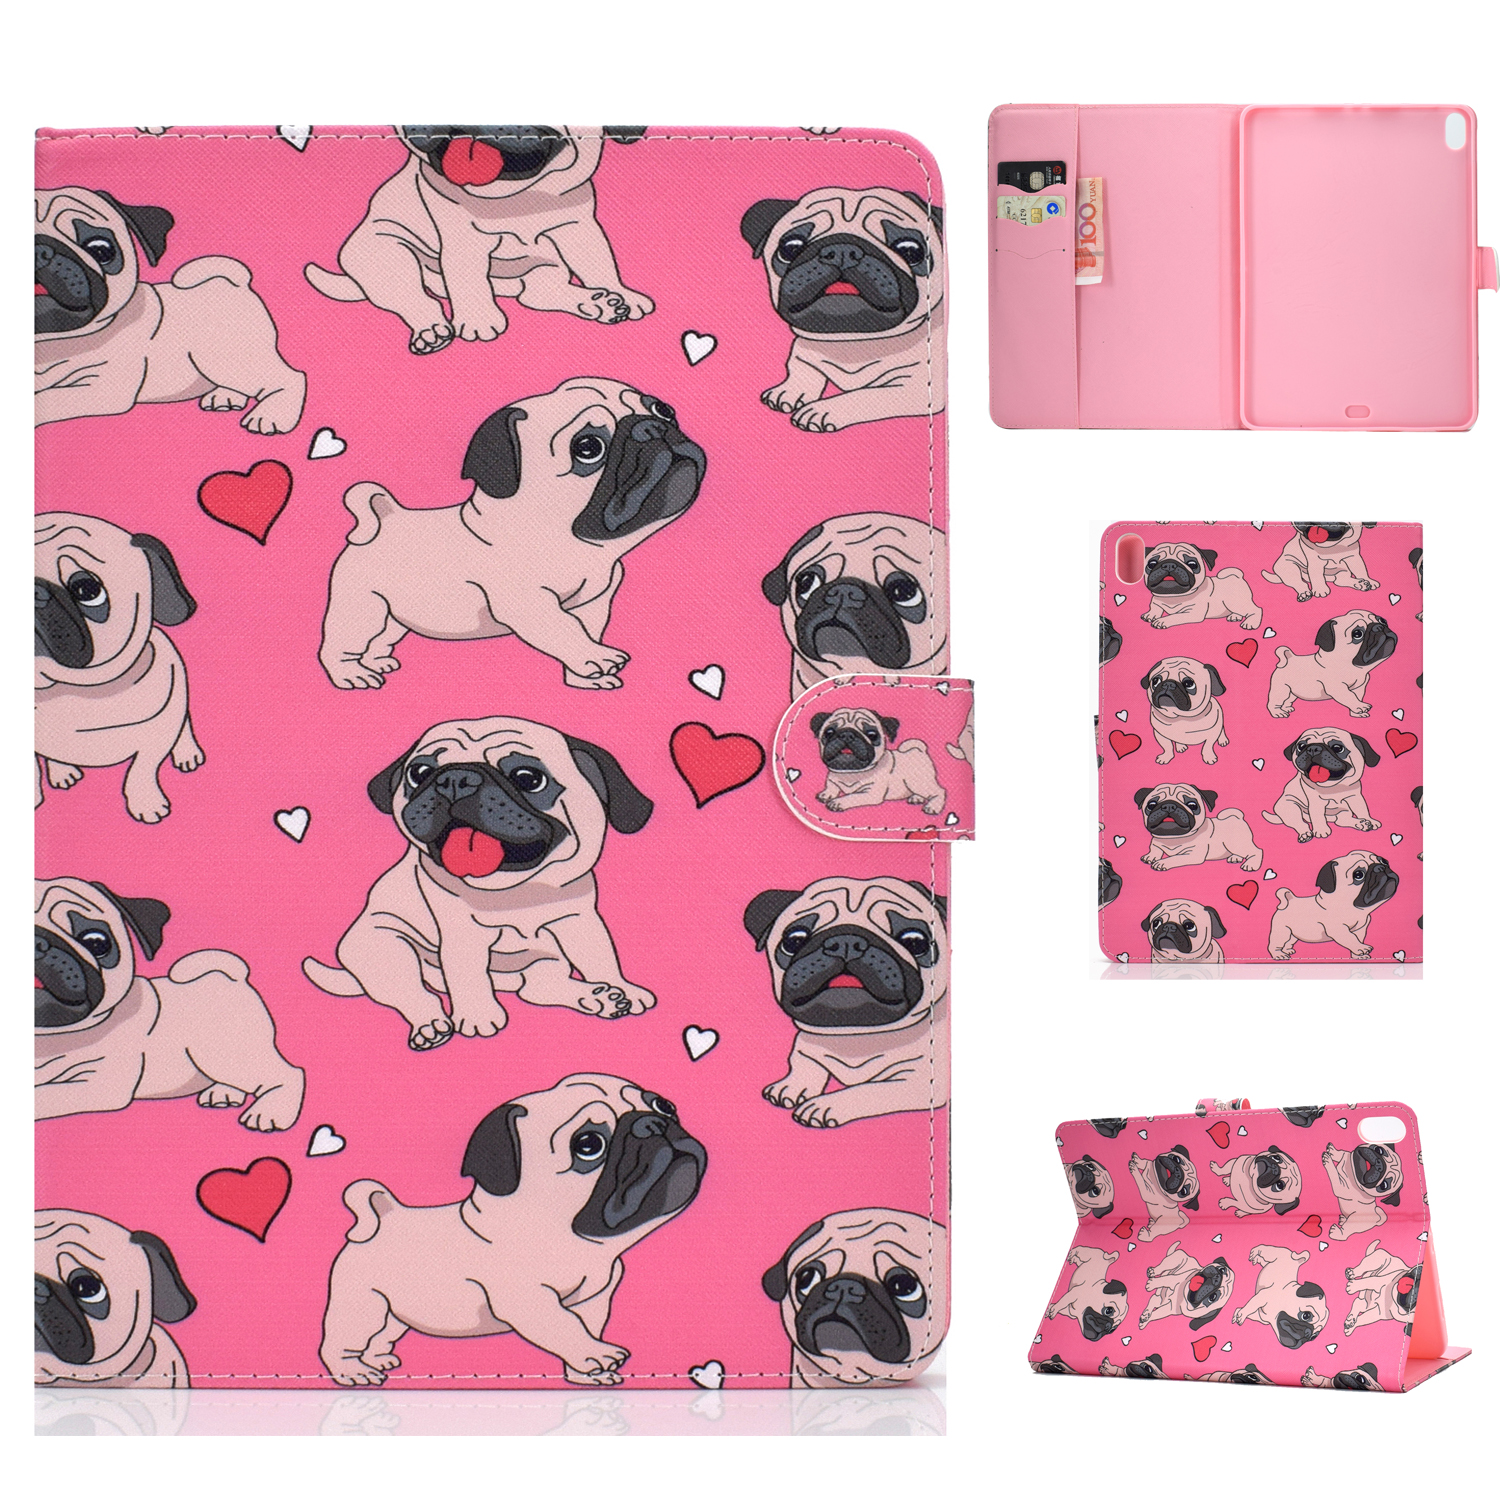 For iPad Pro 11 Laptop Protective Case Smart Stay Color Painted PU Cover with Front Snap Caring dog